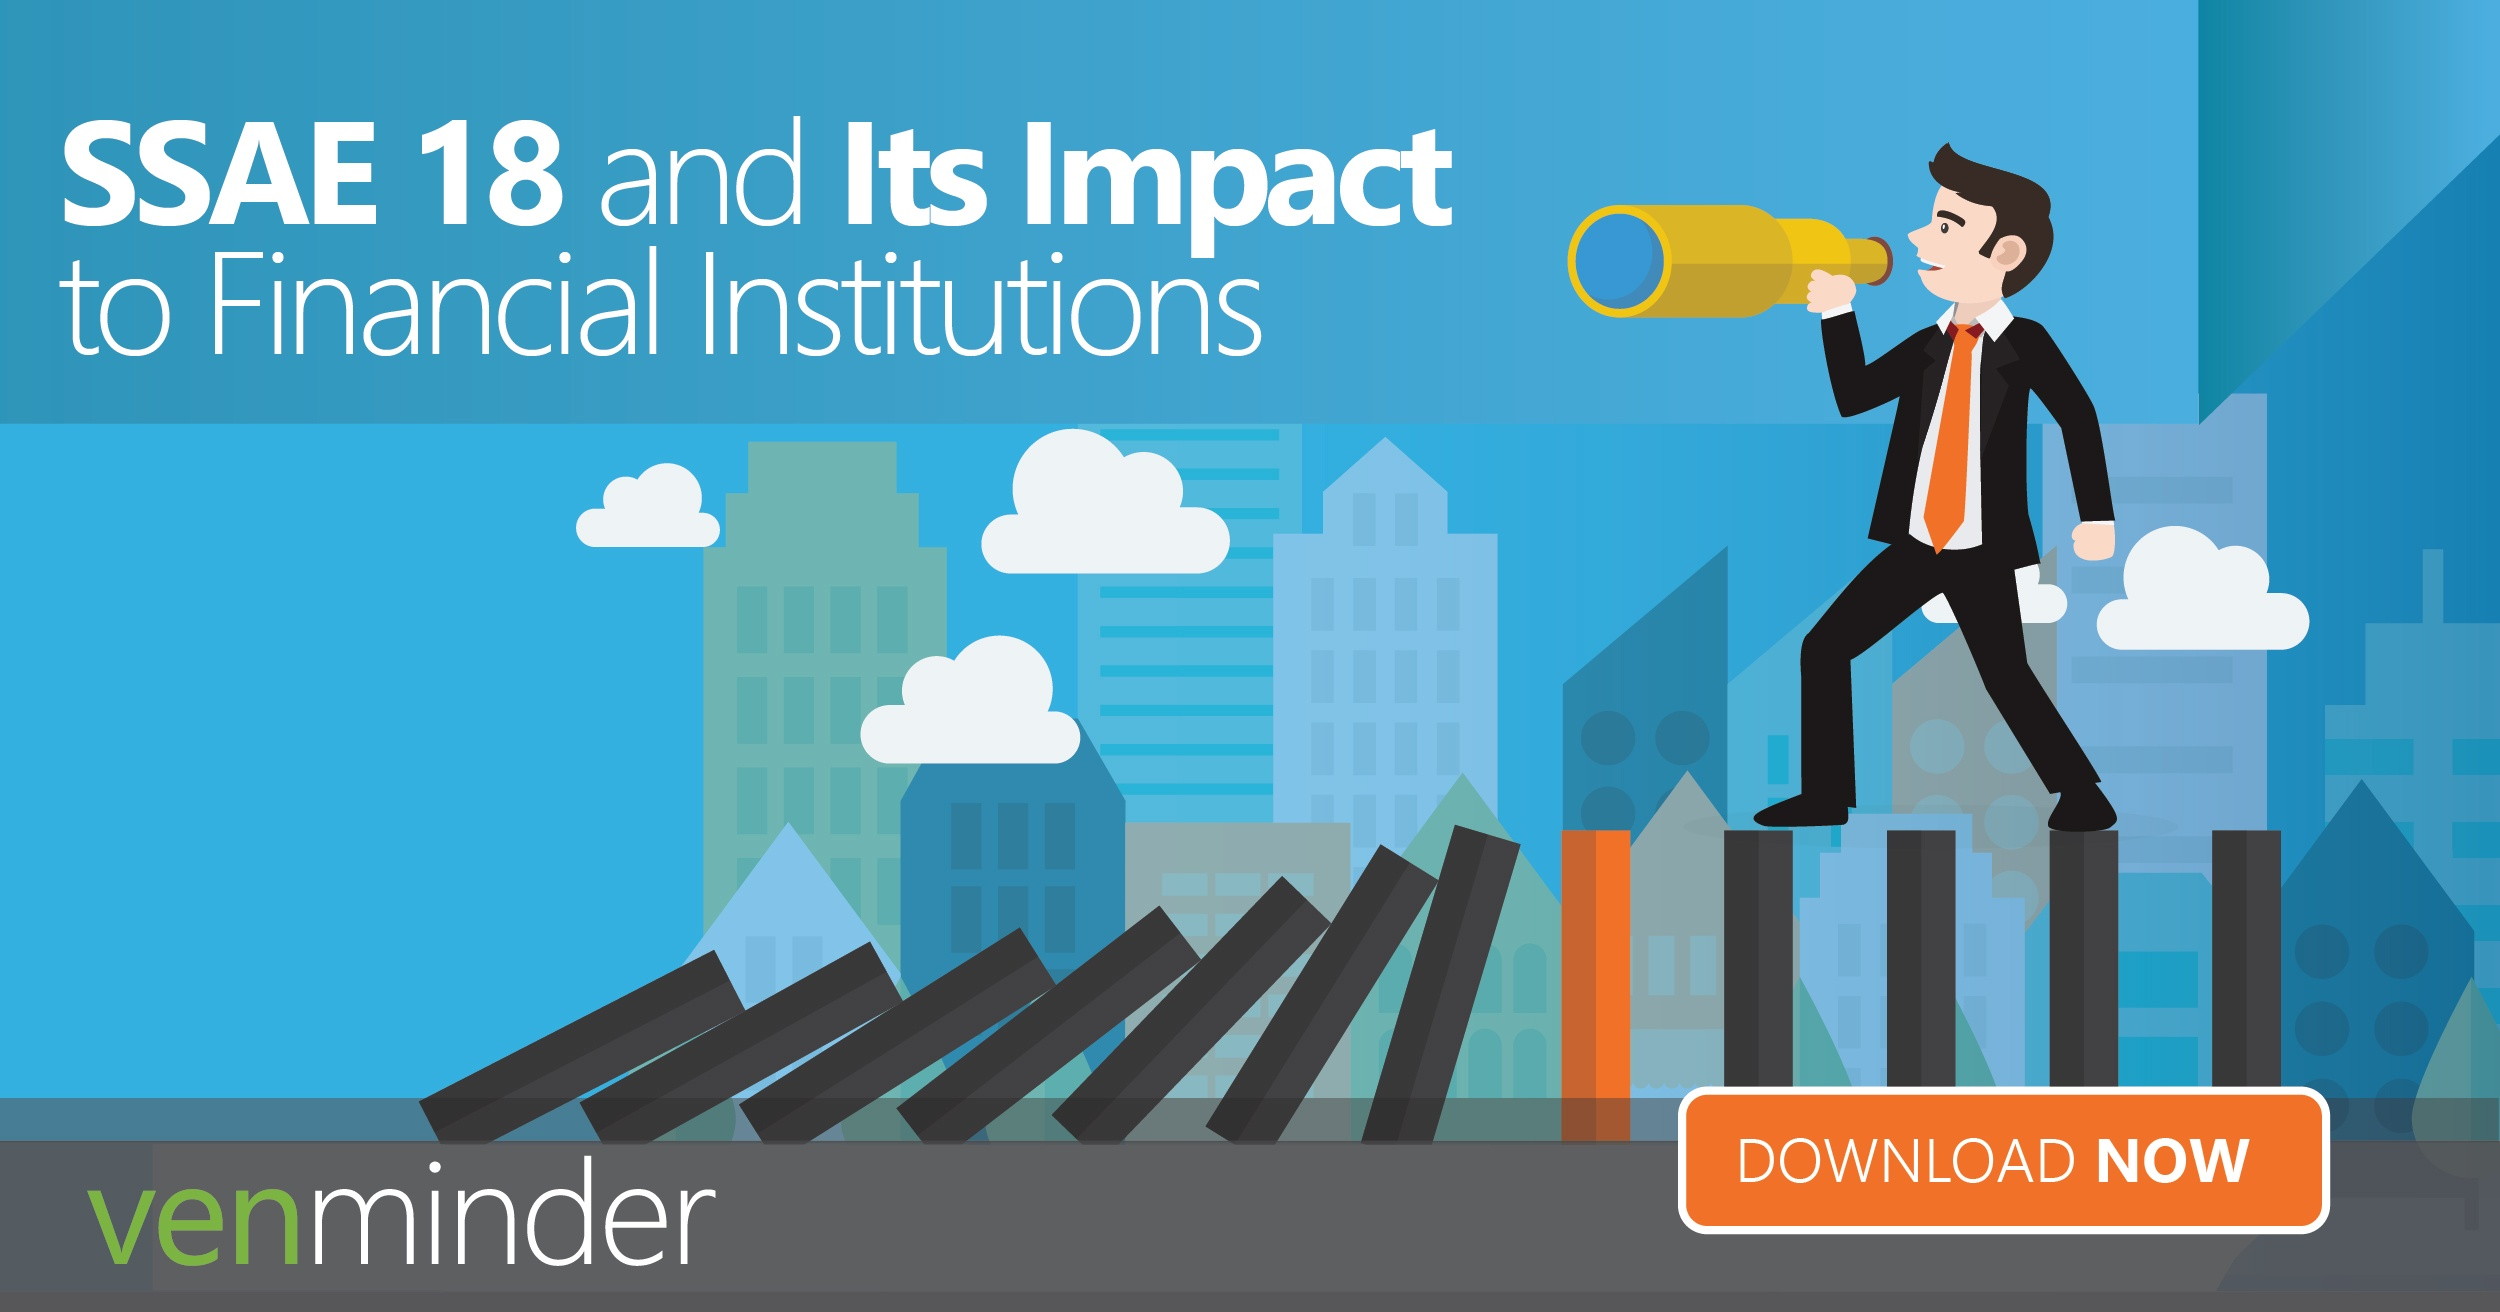 ssae 18 and its impact to bank   cu u0026 39 s infographic